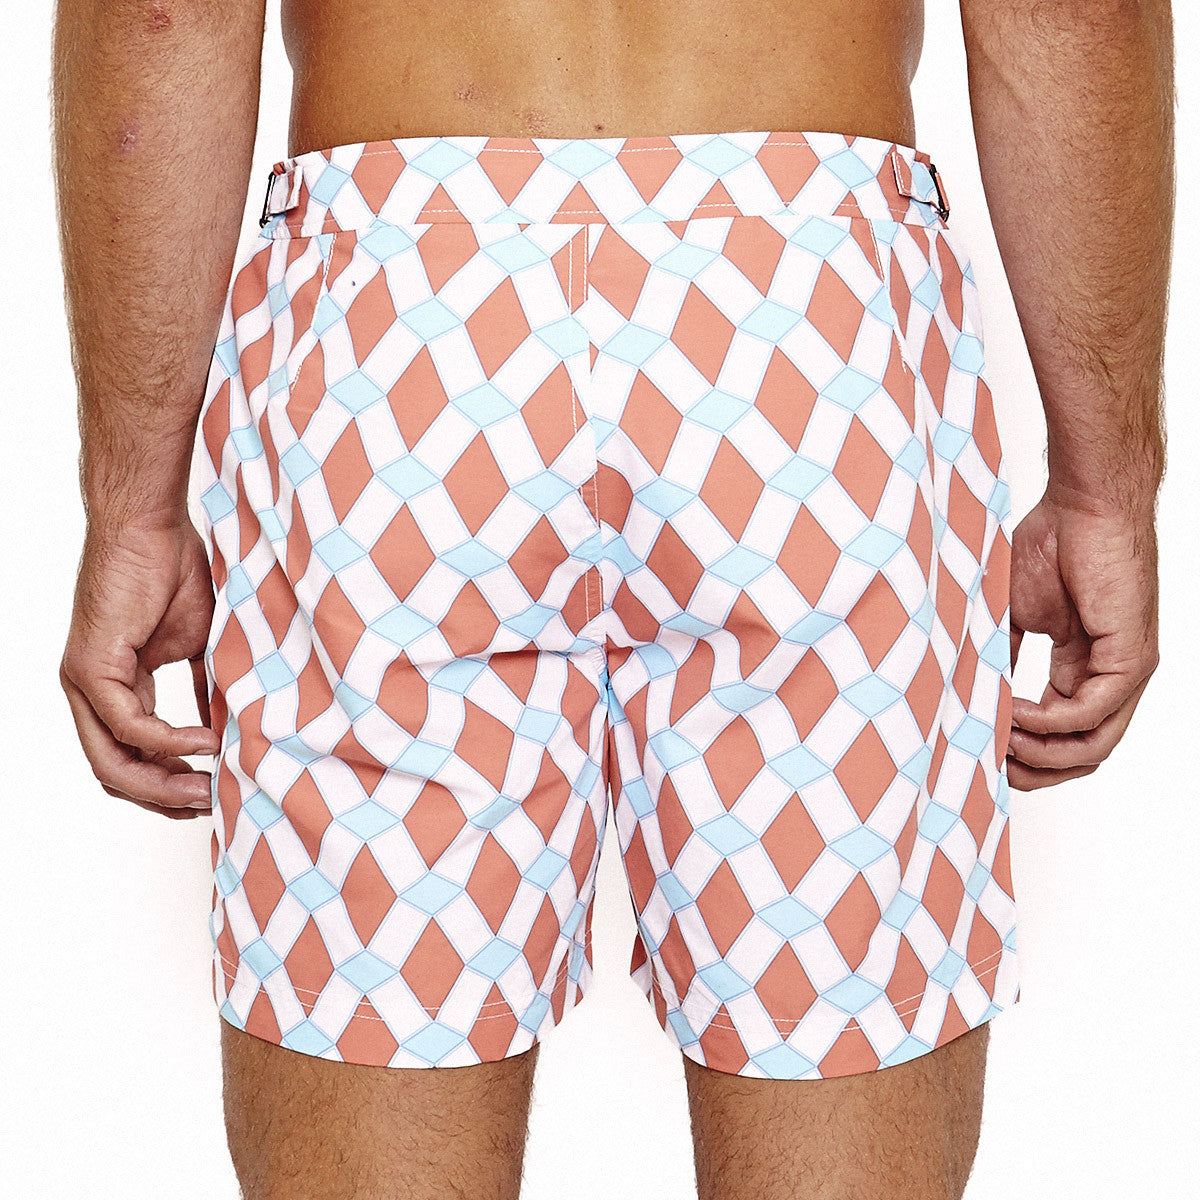 Mens Beach Shorts (Marrakech Orange) Back